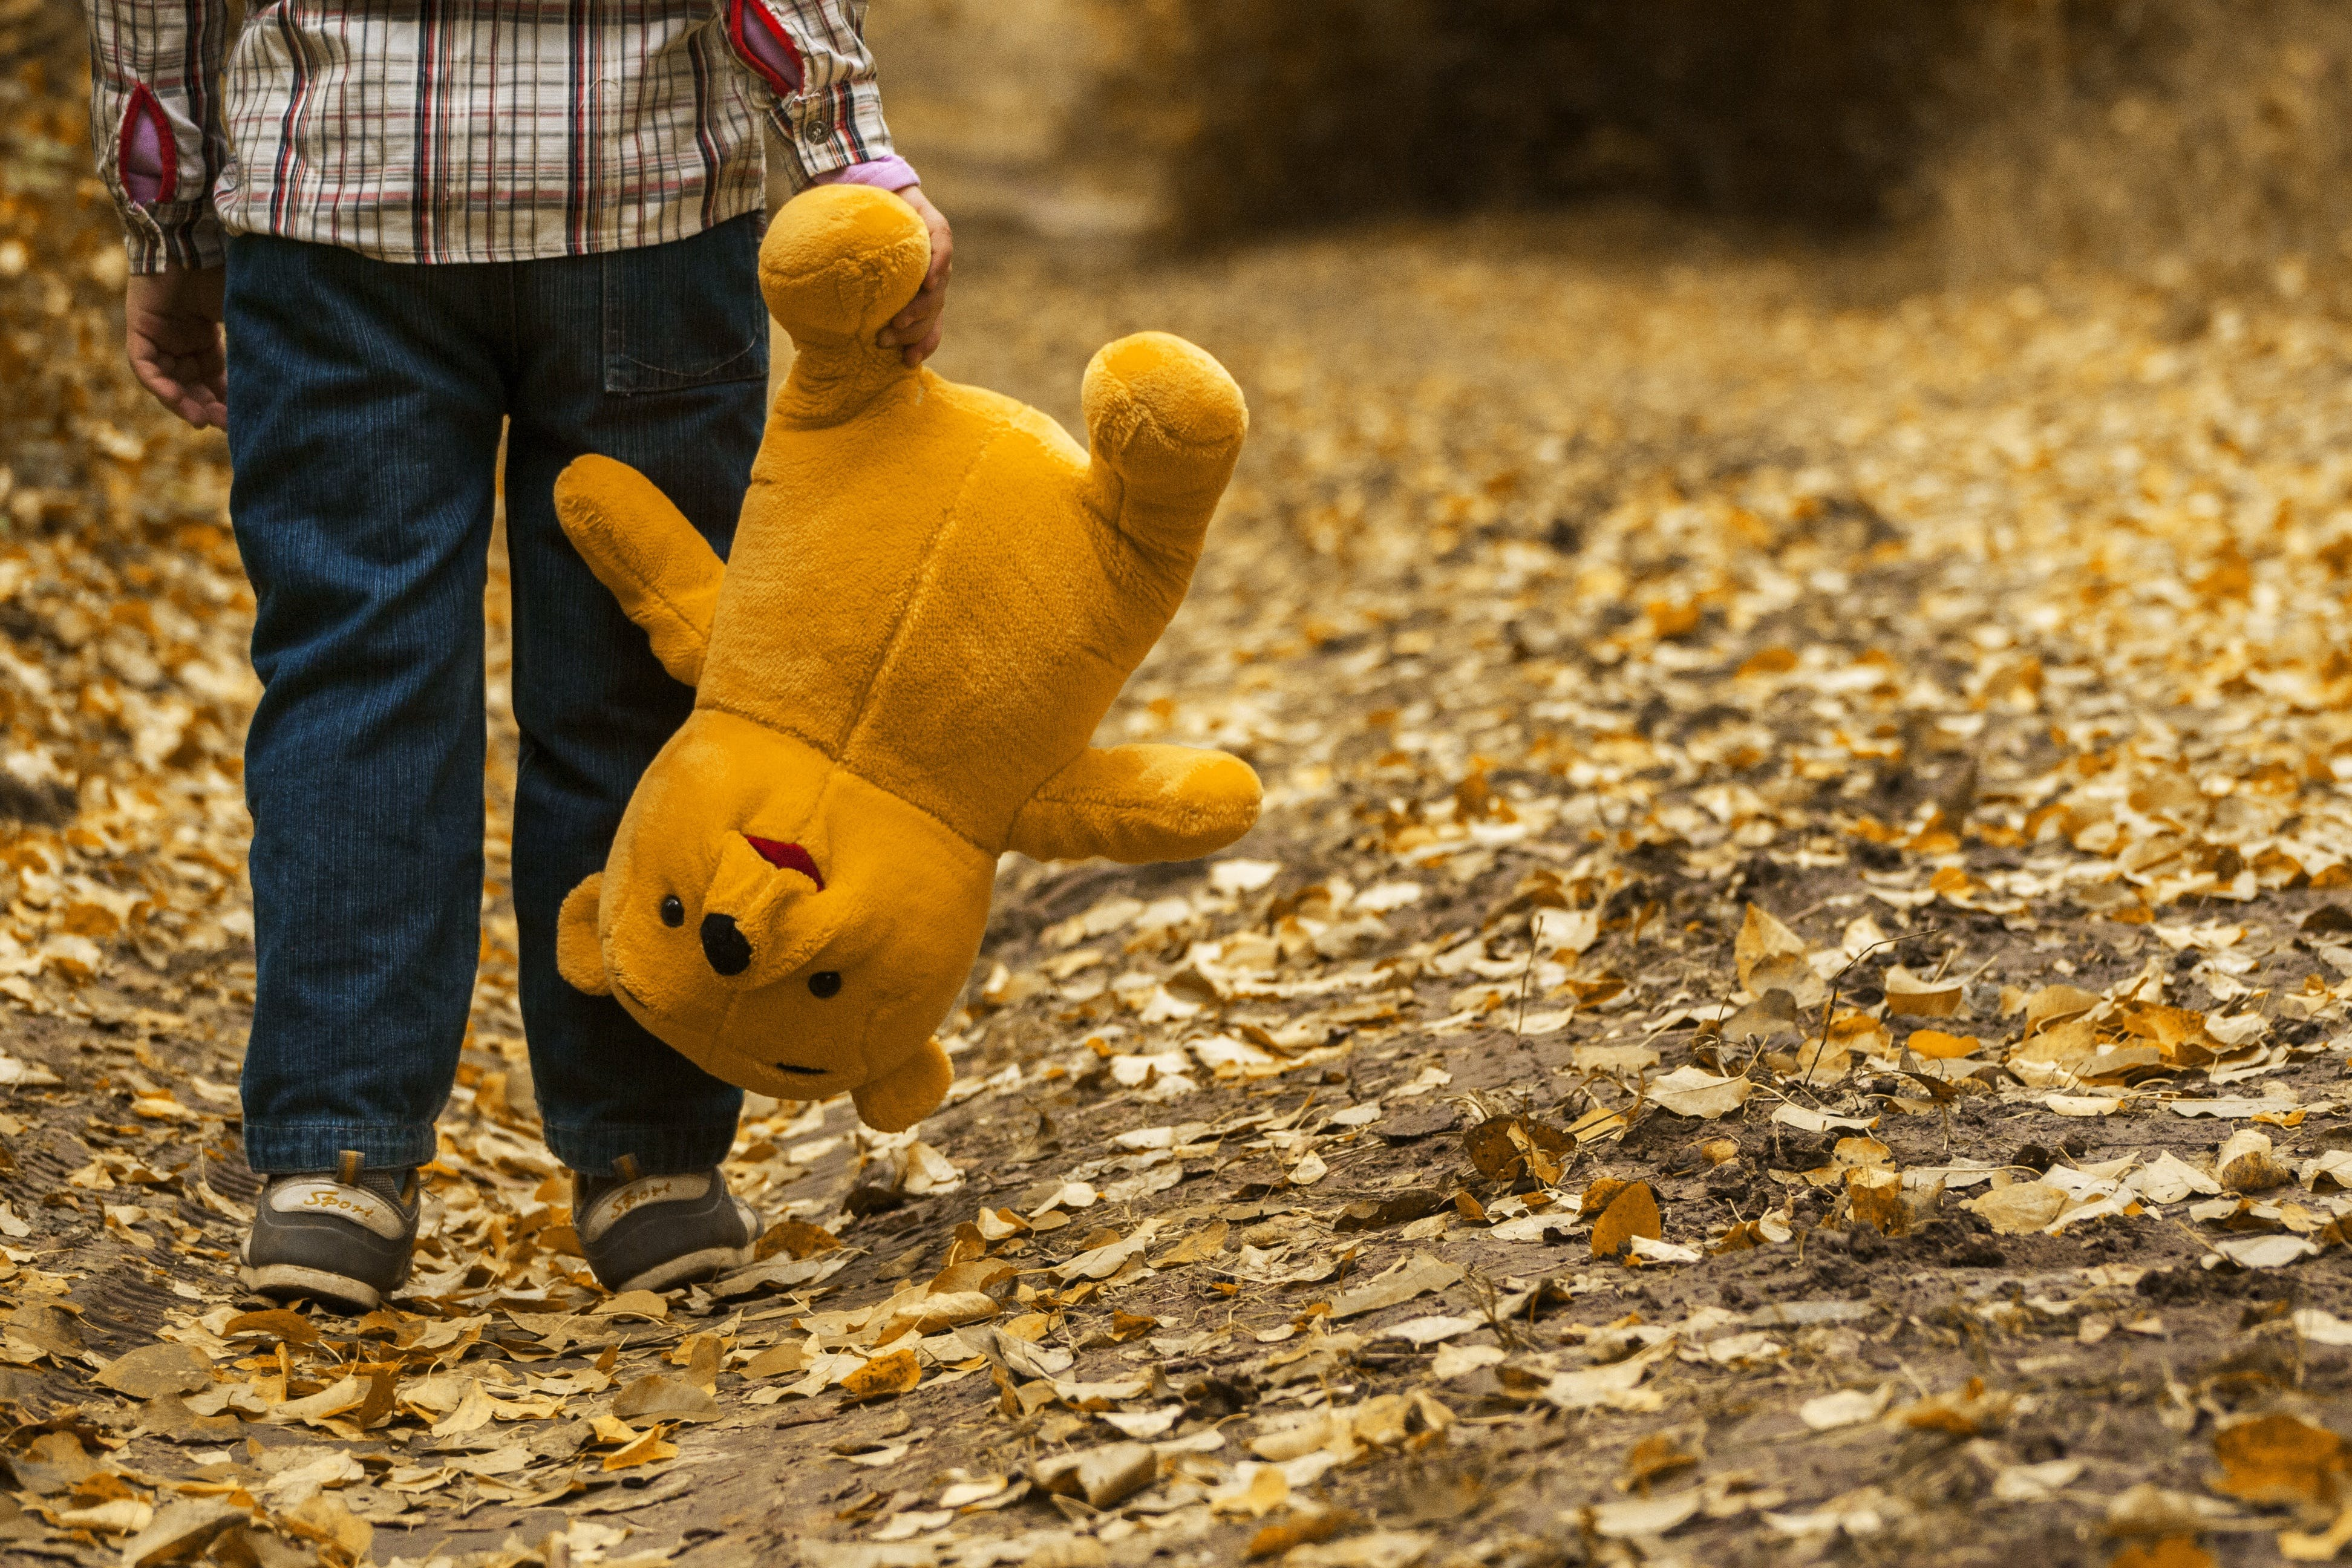 Boy Carrying Bear Plush Toy